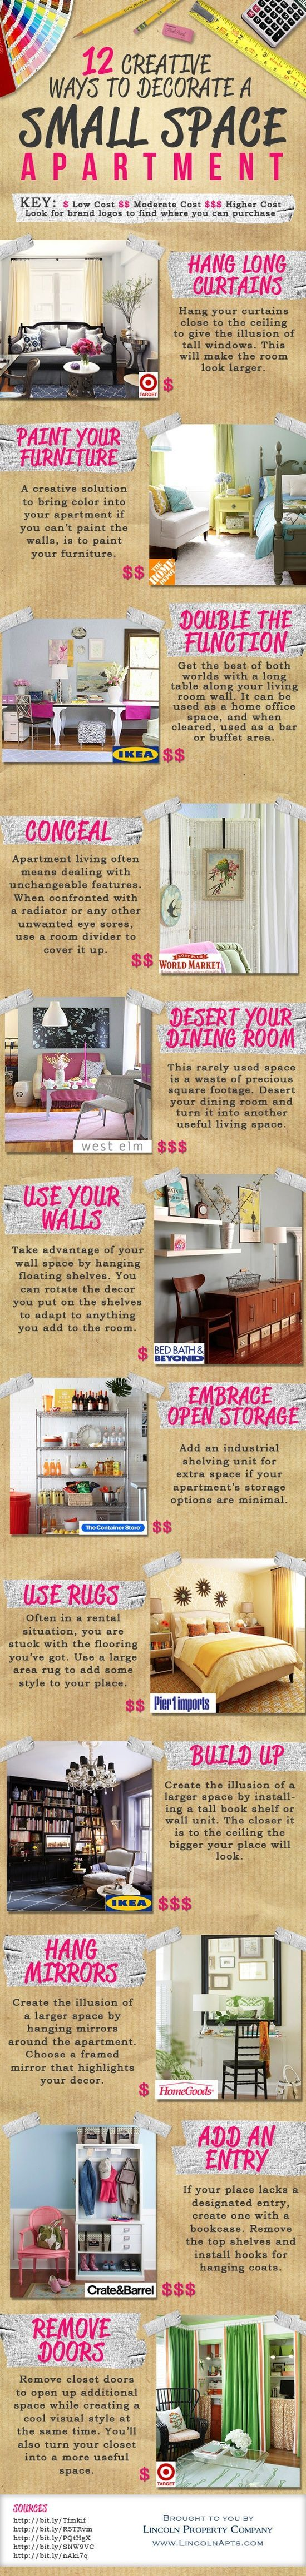 305 Best Step By 10 Images On Pinterest Creative Ideas You39ll Need To Install A Switch Over Separate The Outlets Great And Wonderful For Apartments With Less Space Then Wanted I Will Totally Use These